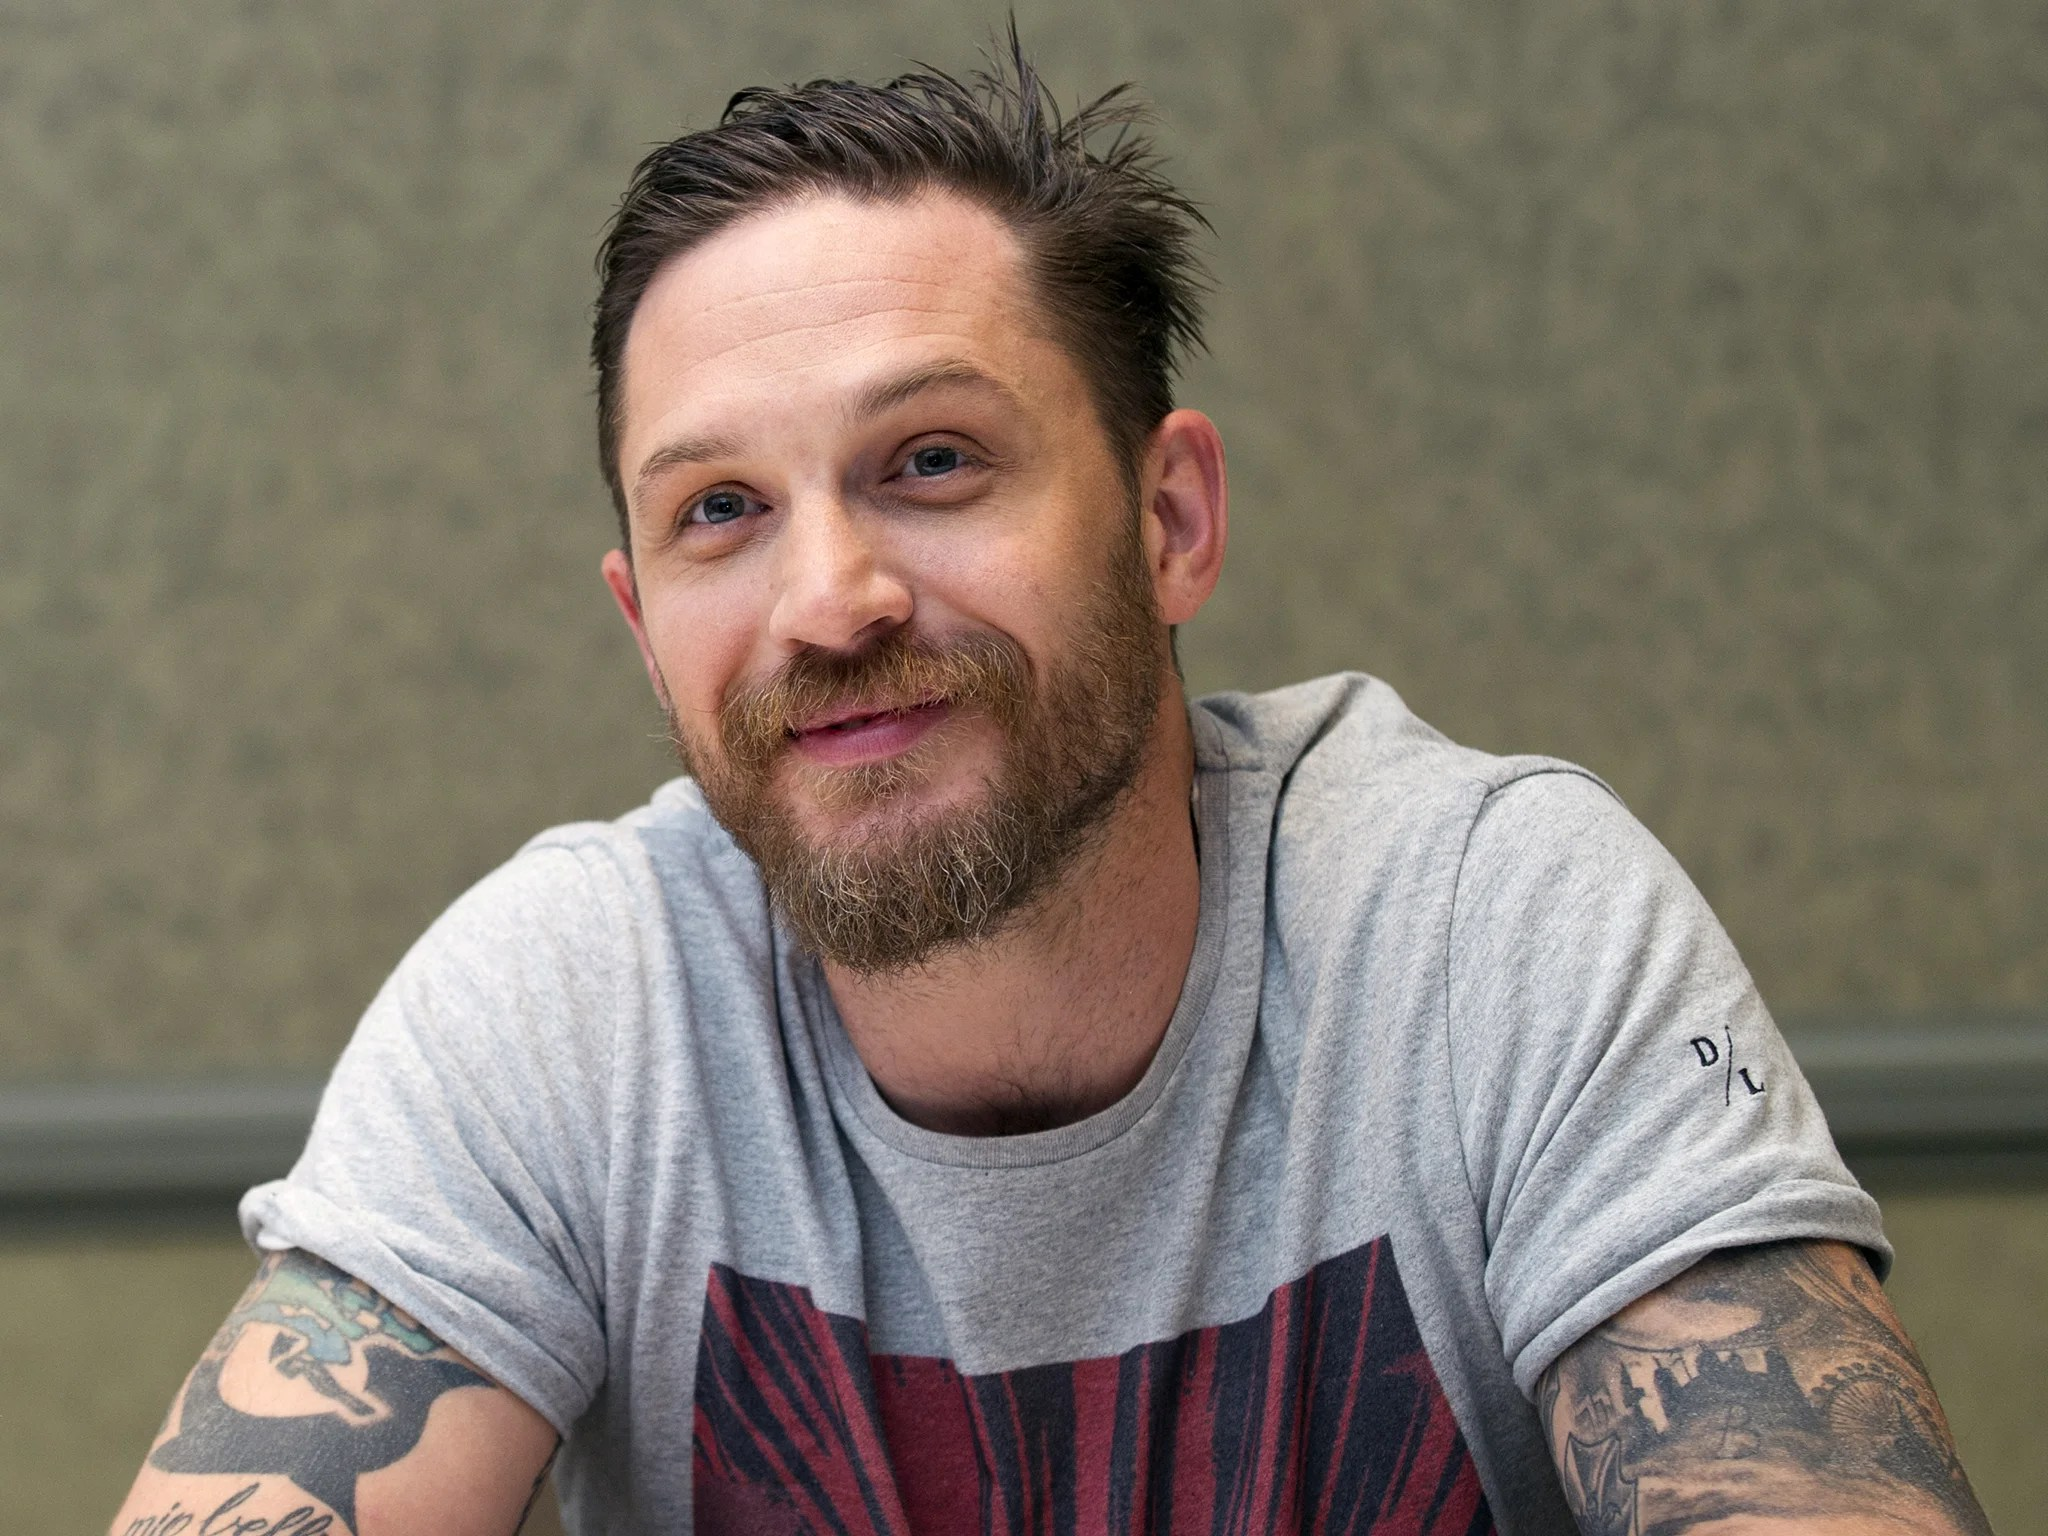 Him Iphone Wallpaper Tom Hardy Issues Open Letter Response To Criticism From